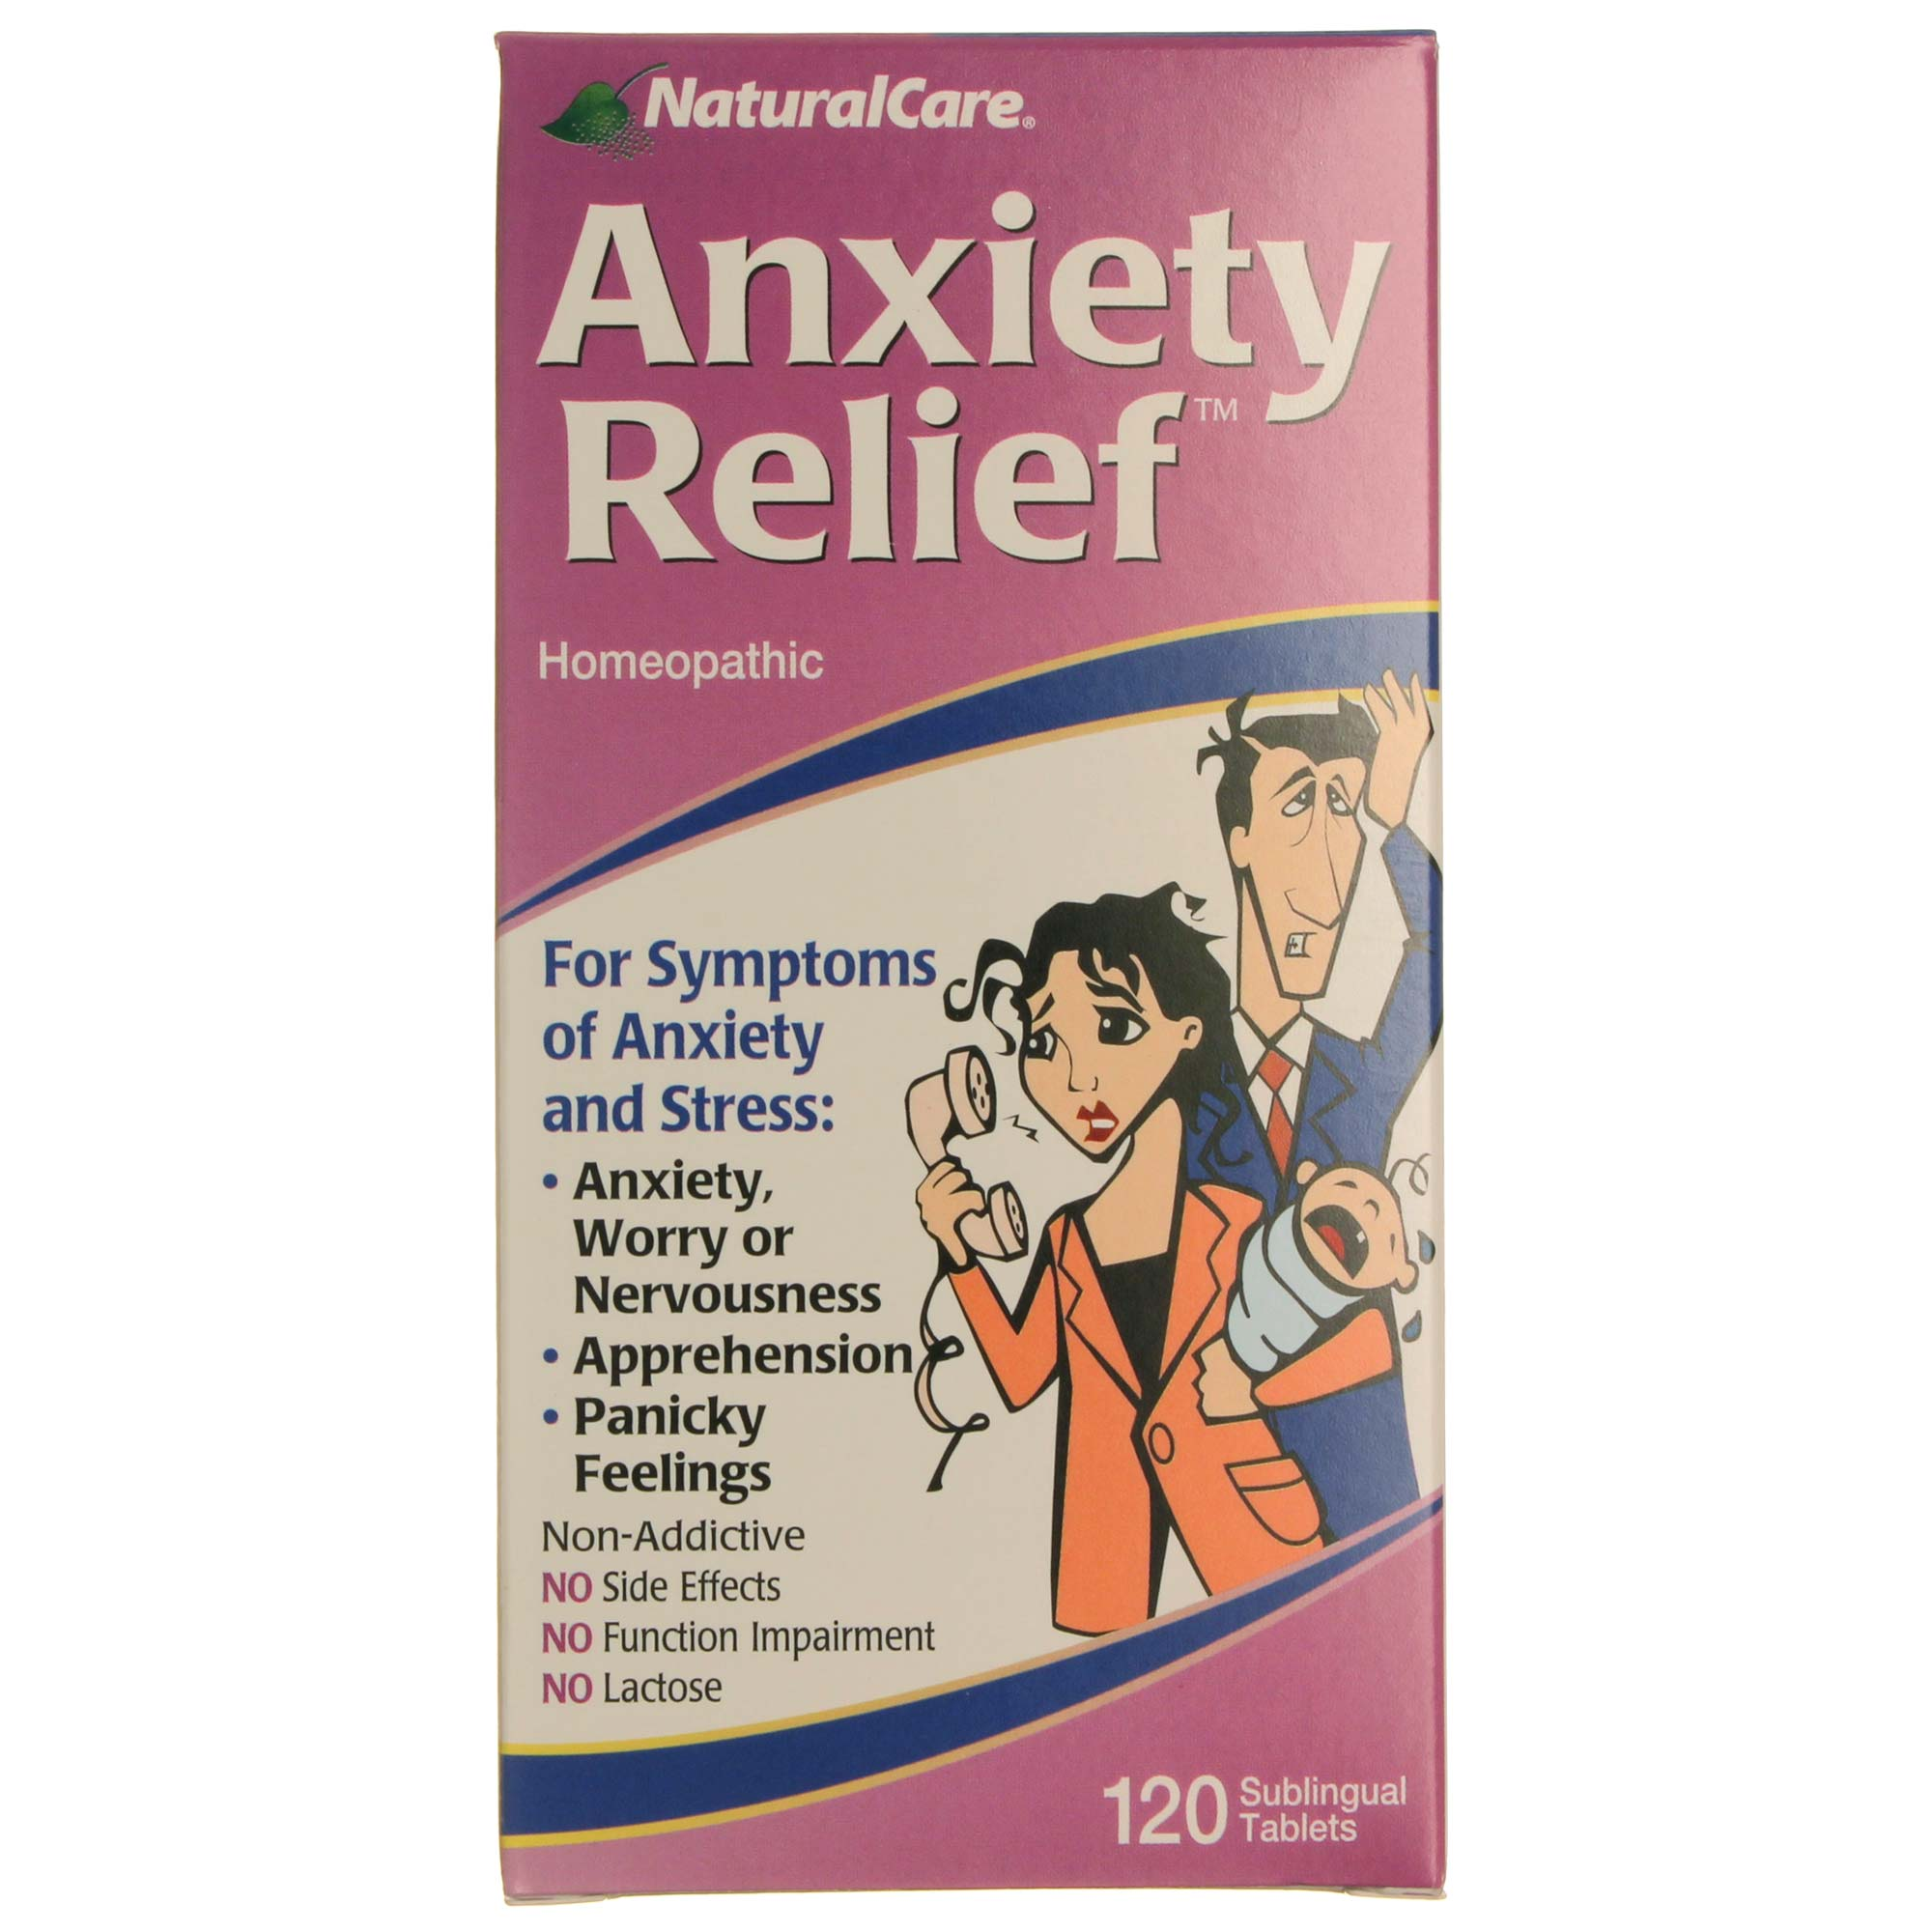 Natural Care Anxiety Relief - 120 Tablets